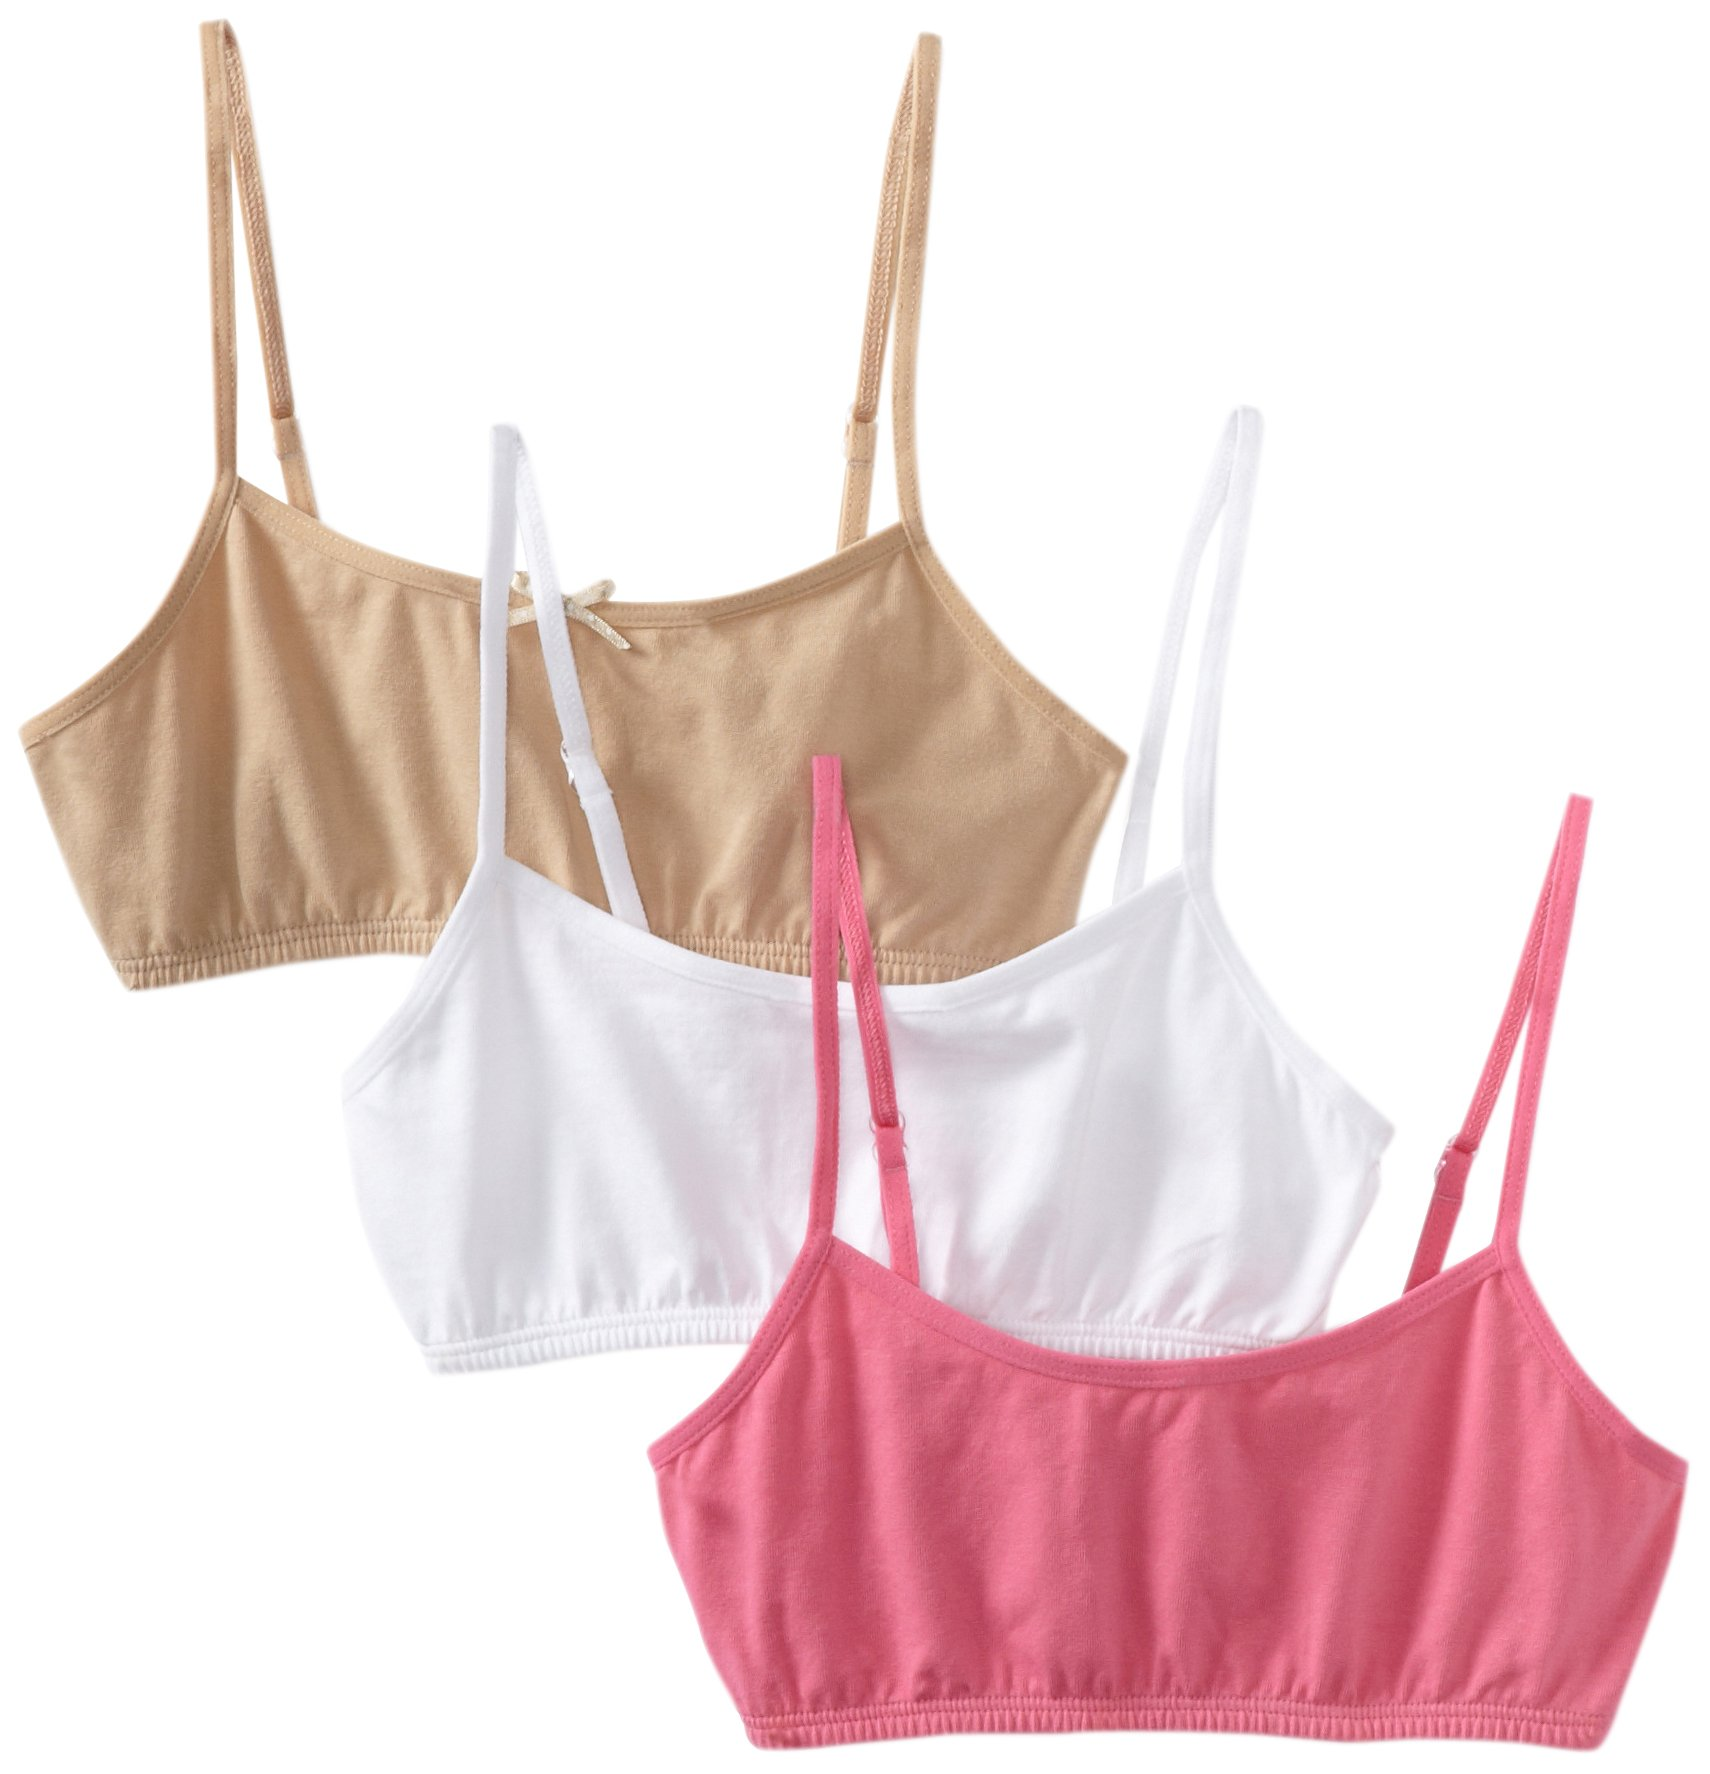 Maidenform Big Girls'   Crop Bra (Pack of 3), White/Nude/Pink, Medium